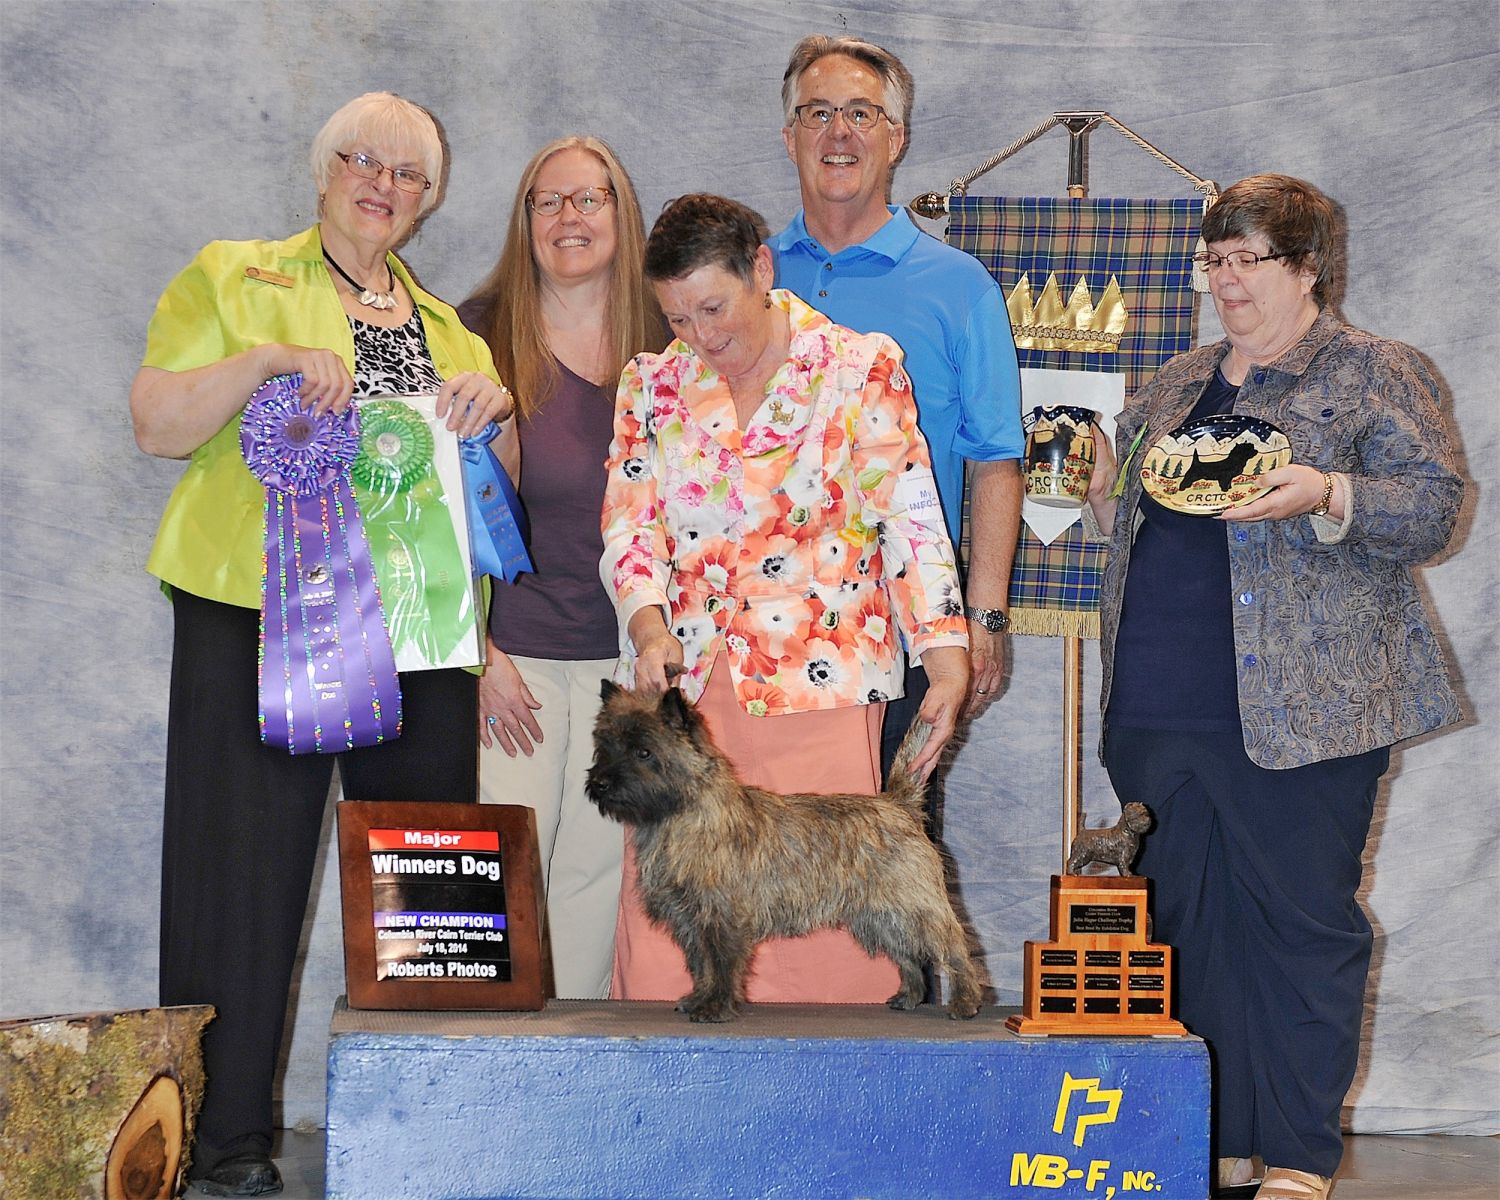 WD - 2014 Specialty - Columbia River Cairn Terrier Club